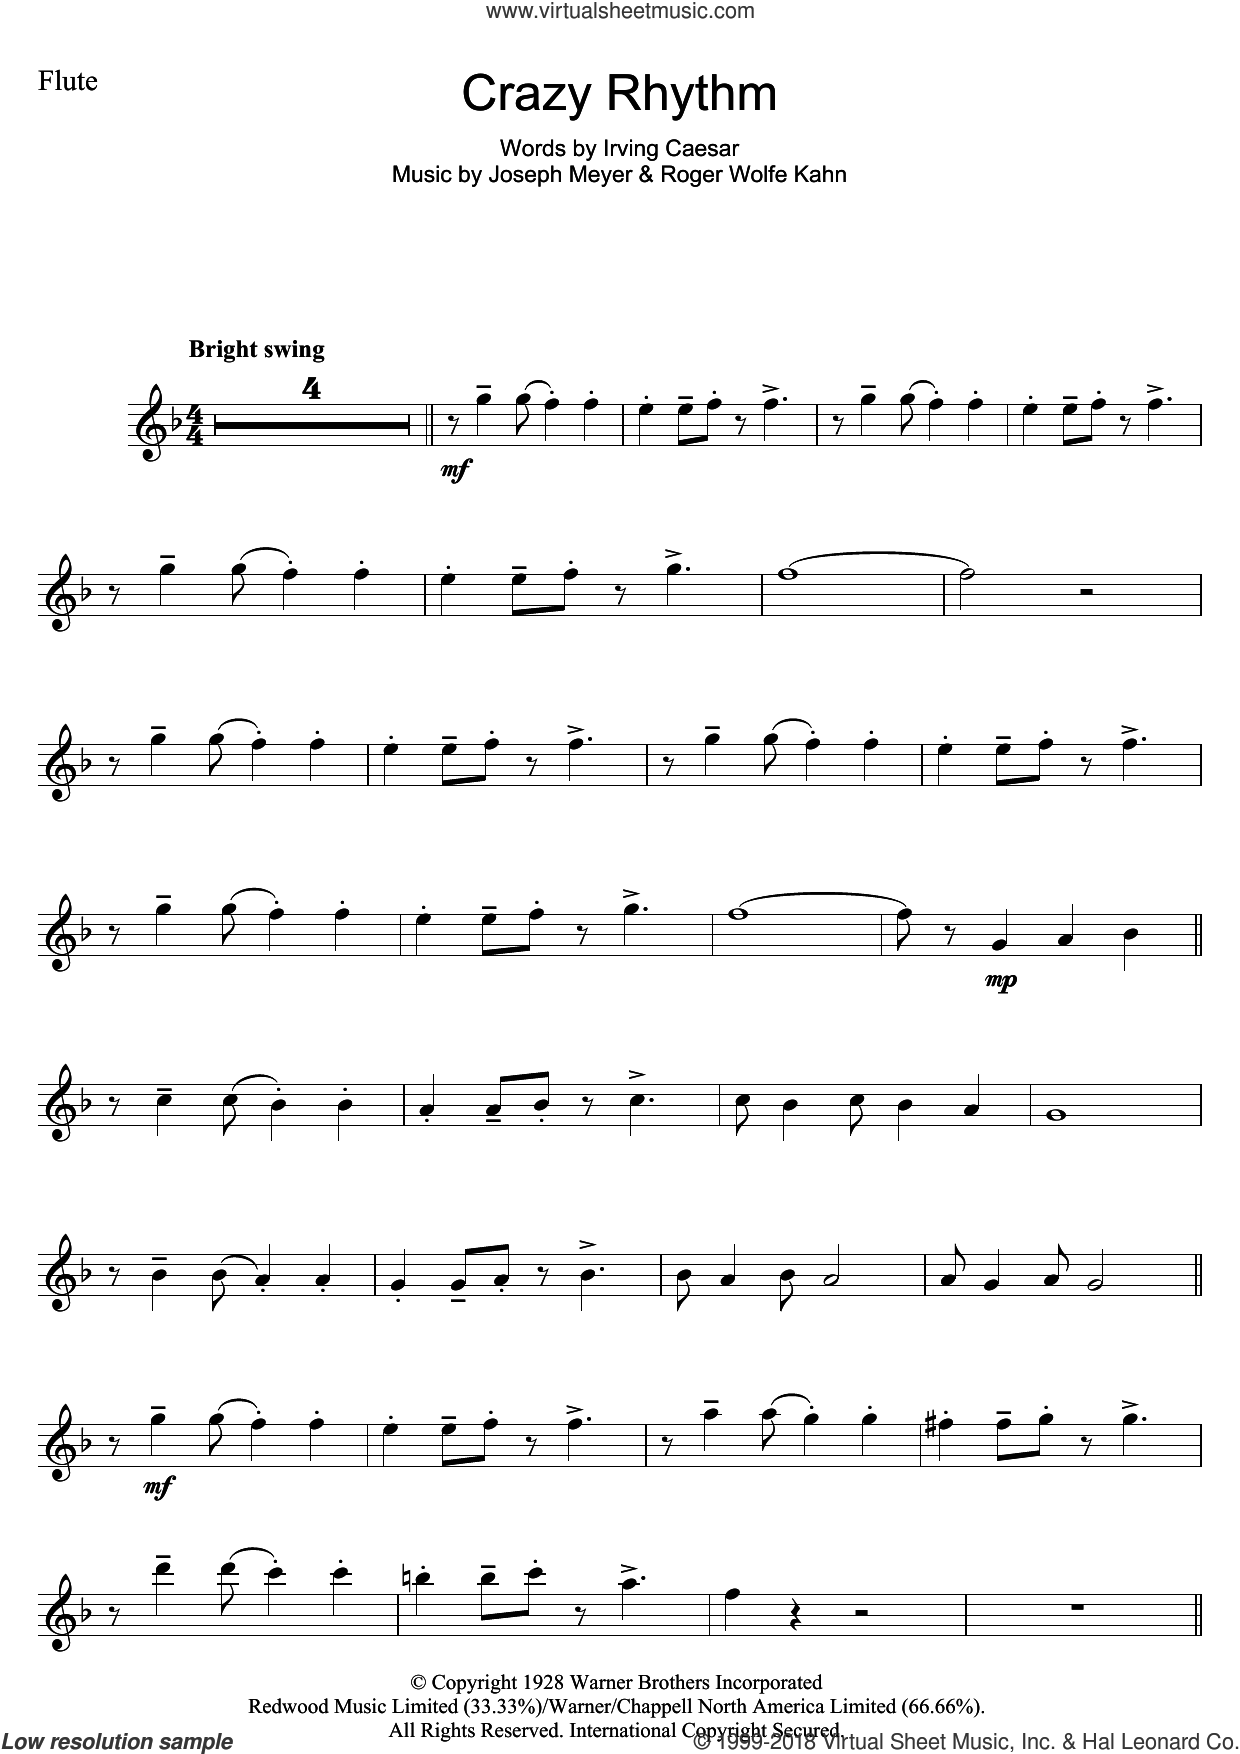 Crazy Rhythm sheet music for flute solo by Roger Wolfe Kahn, Chet Baker, Irving Caesar and Joseph Meyer. Score Image Preview.